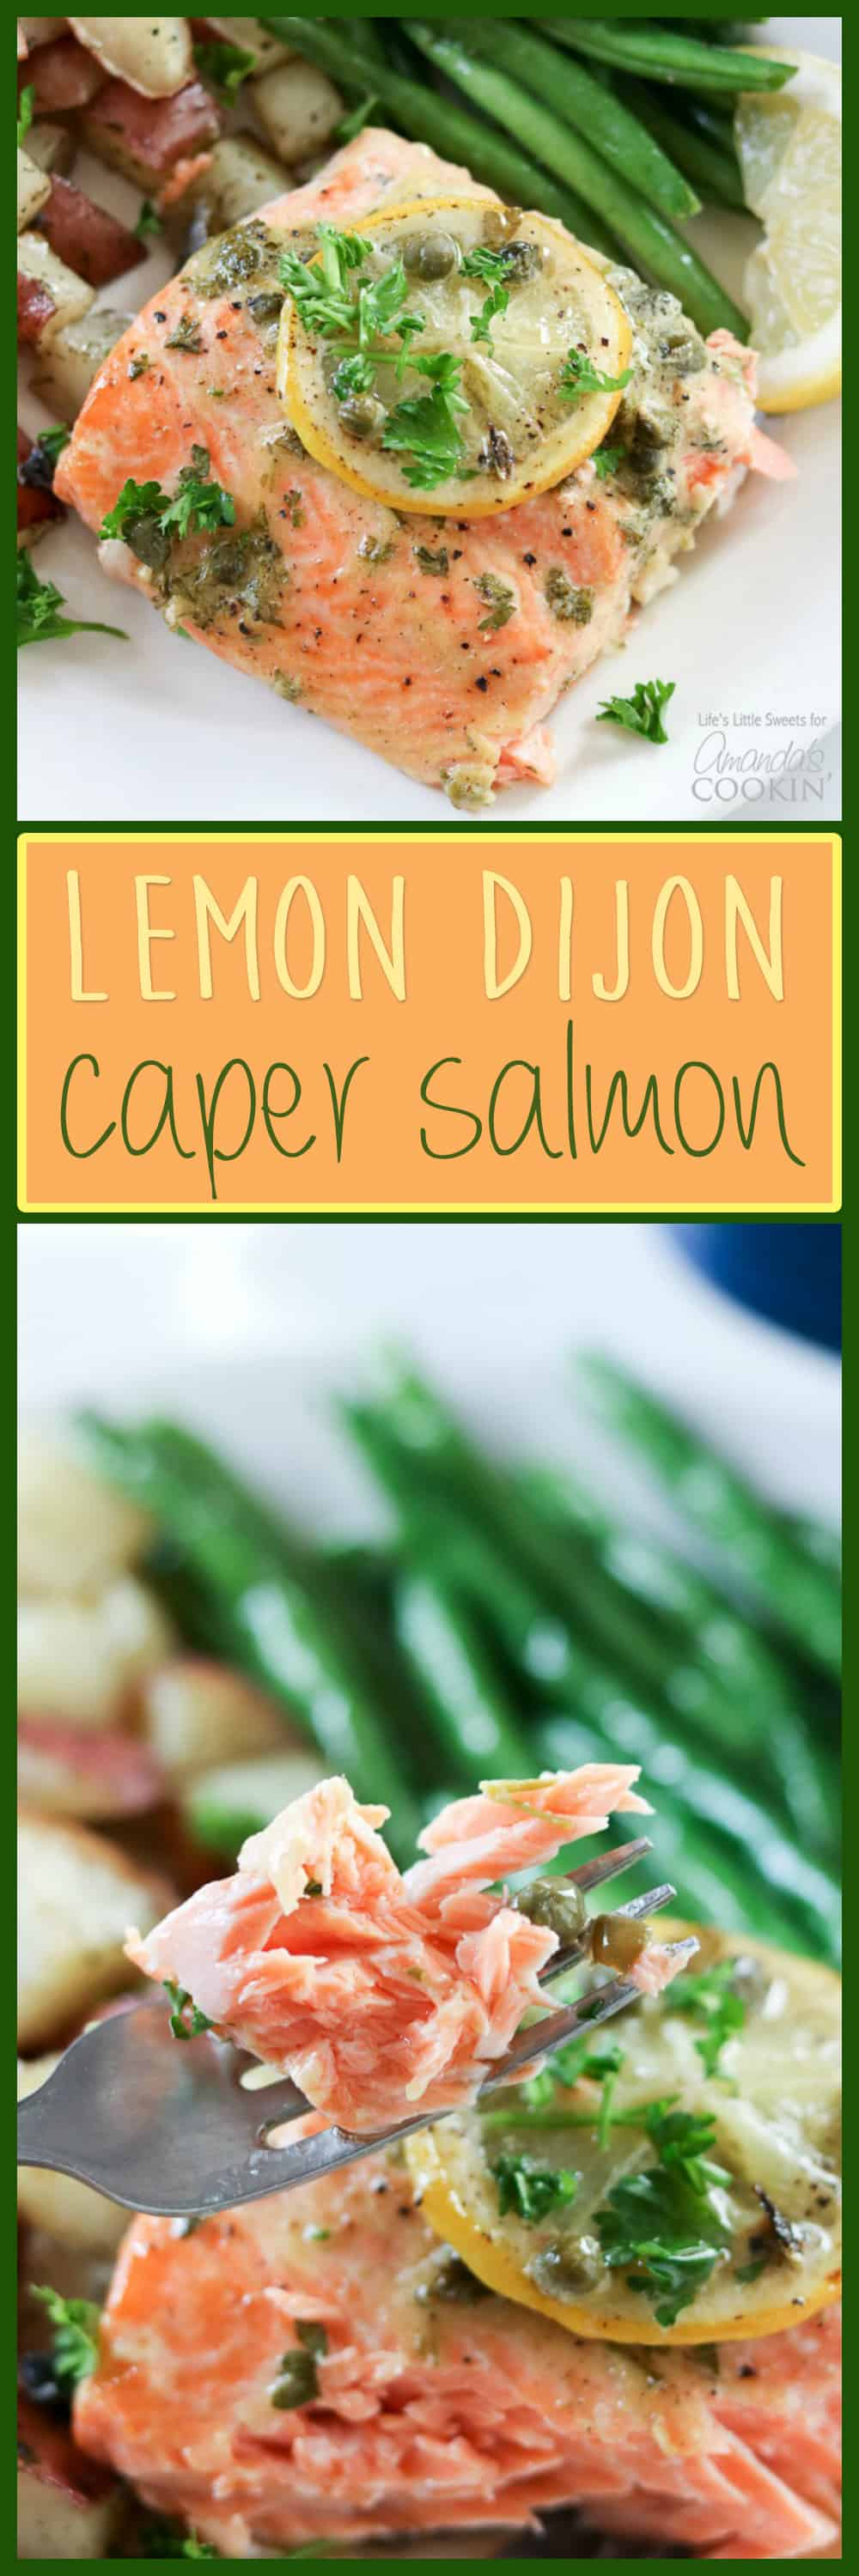 dijon lemon caper salmon with green beans and red potatoes